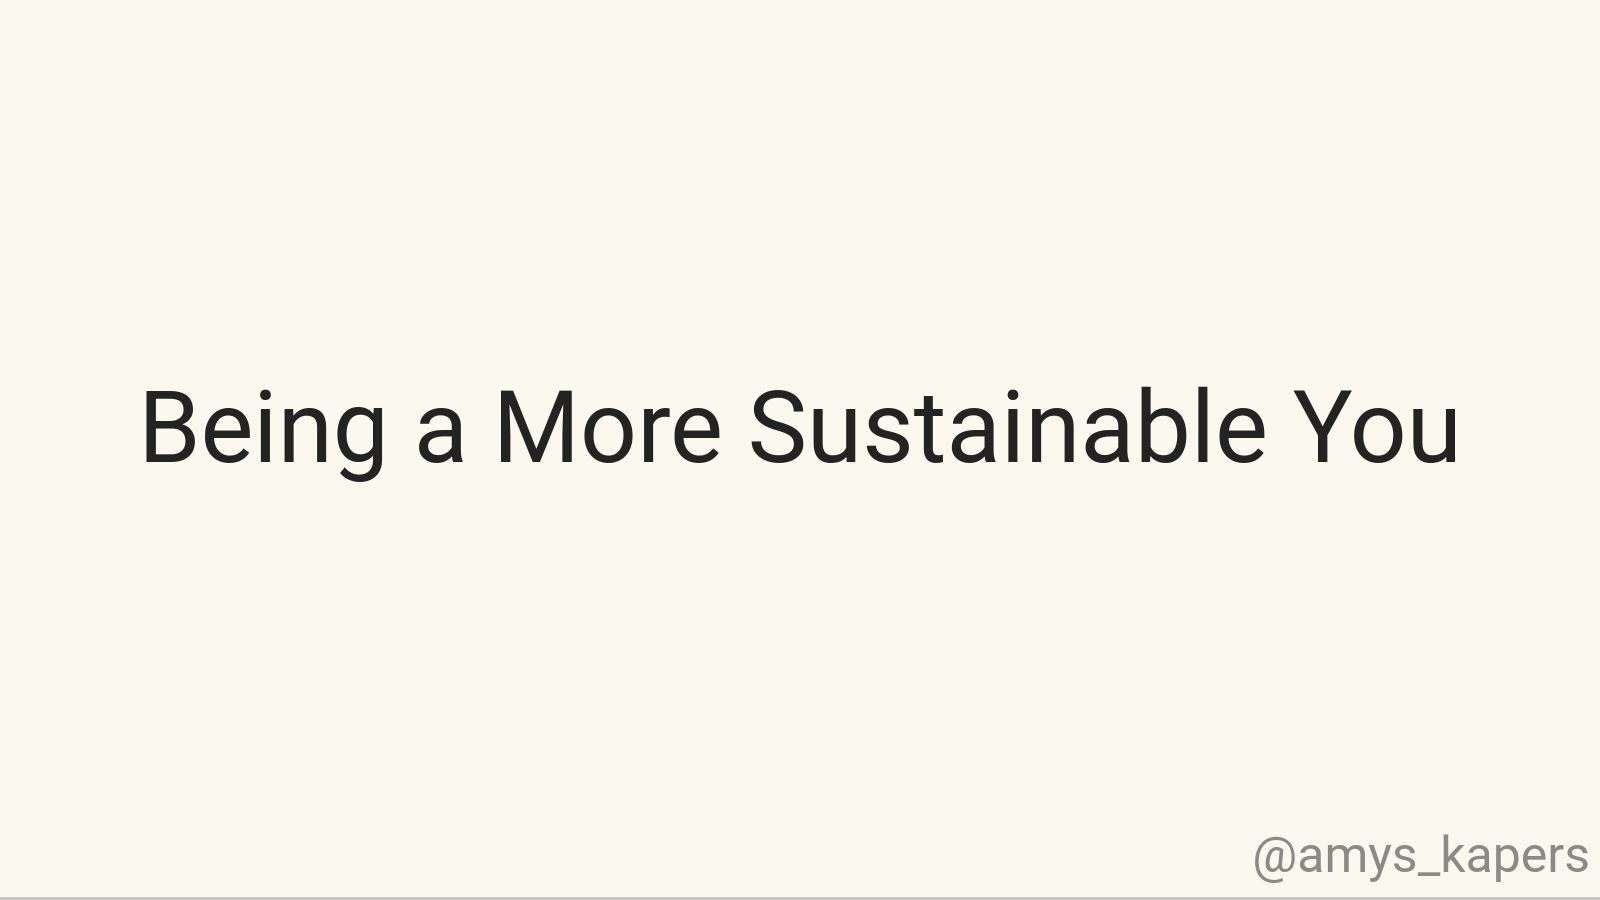 Being a More Sustainable You